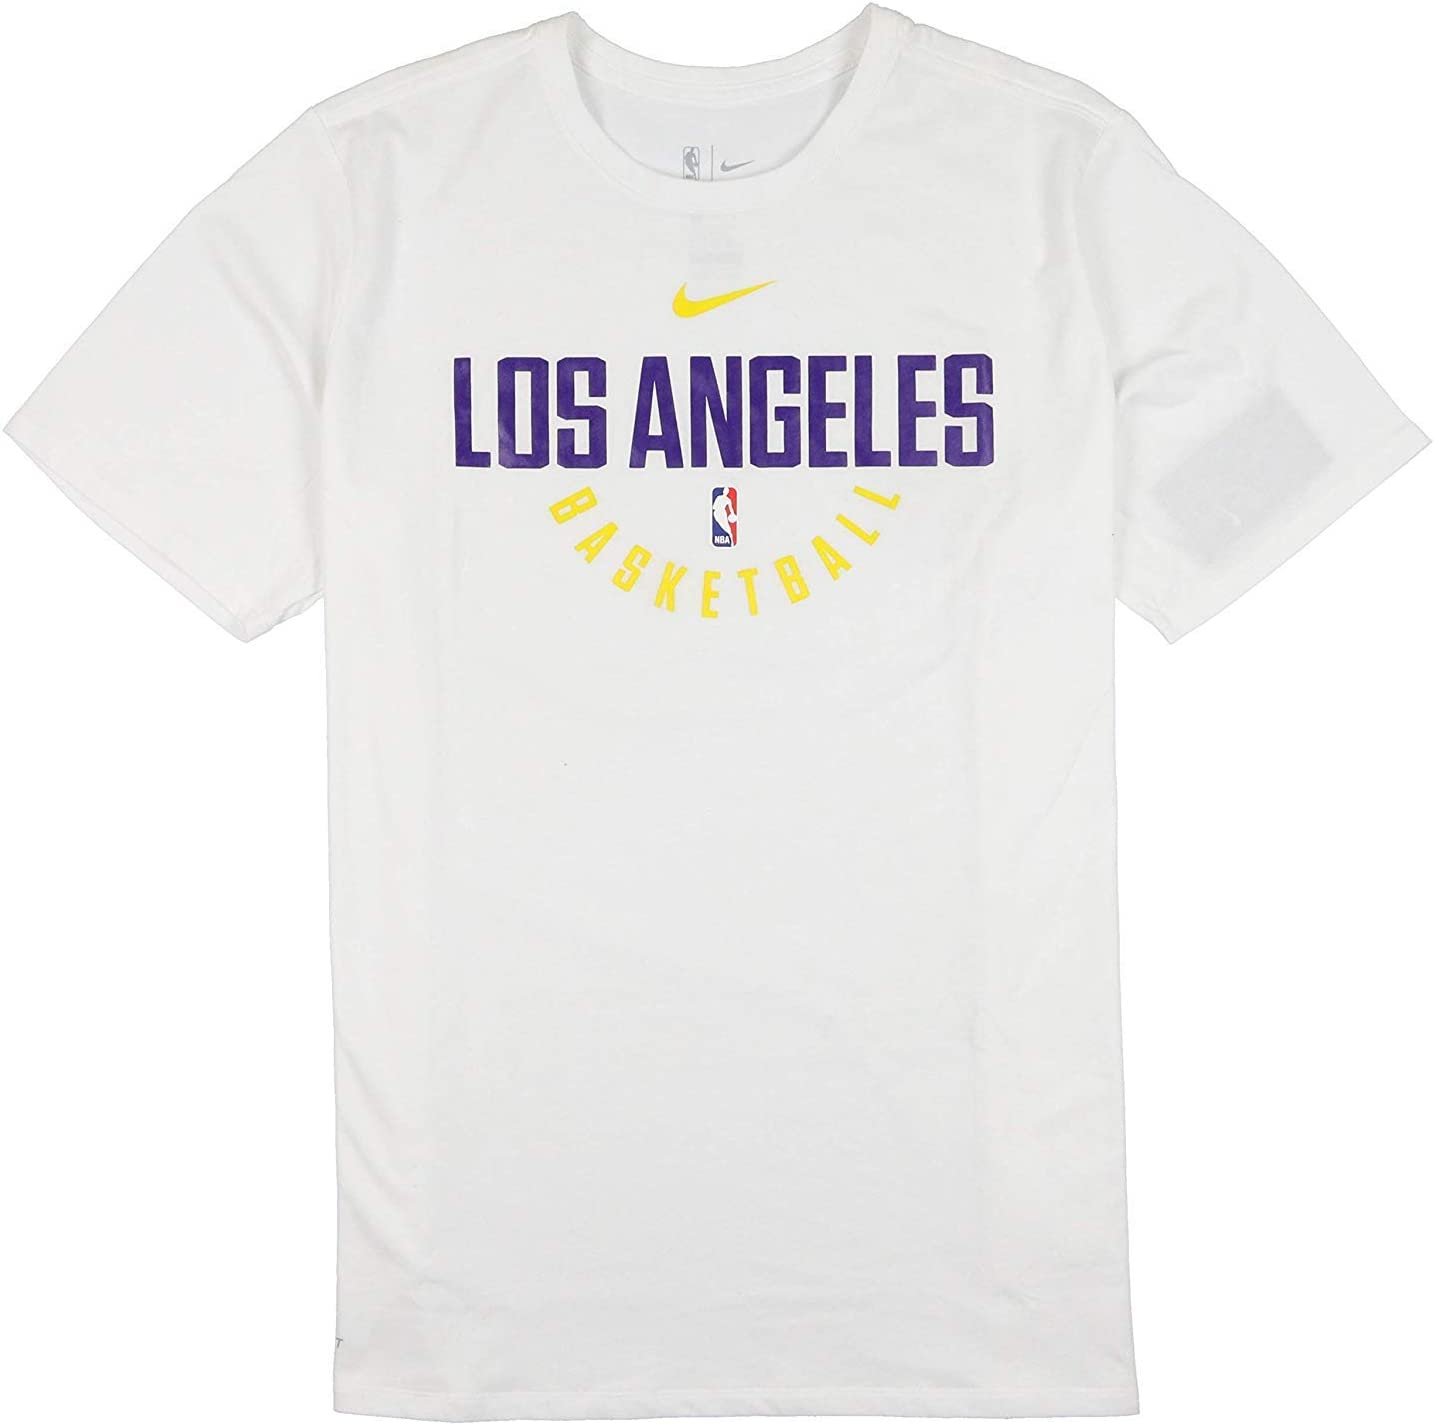 nike lakers practice shirt Shop Clothing & Shoes Online